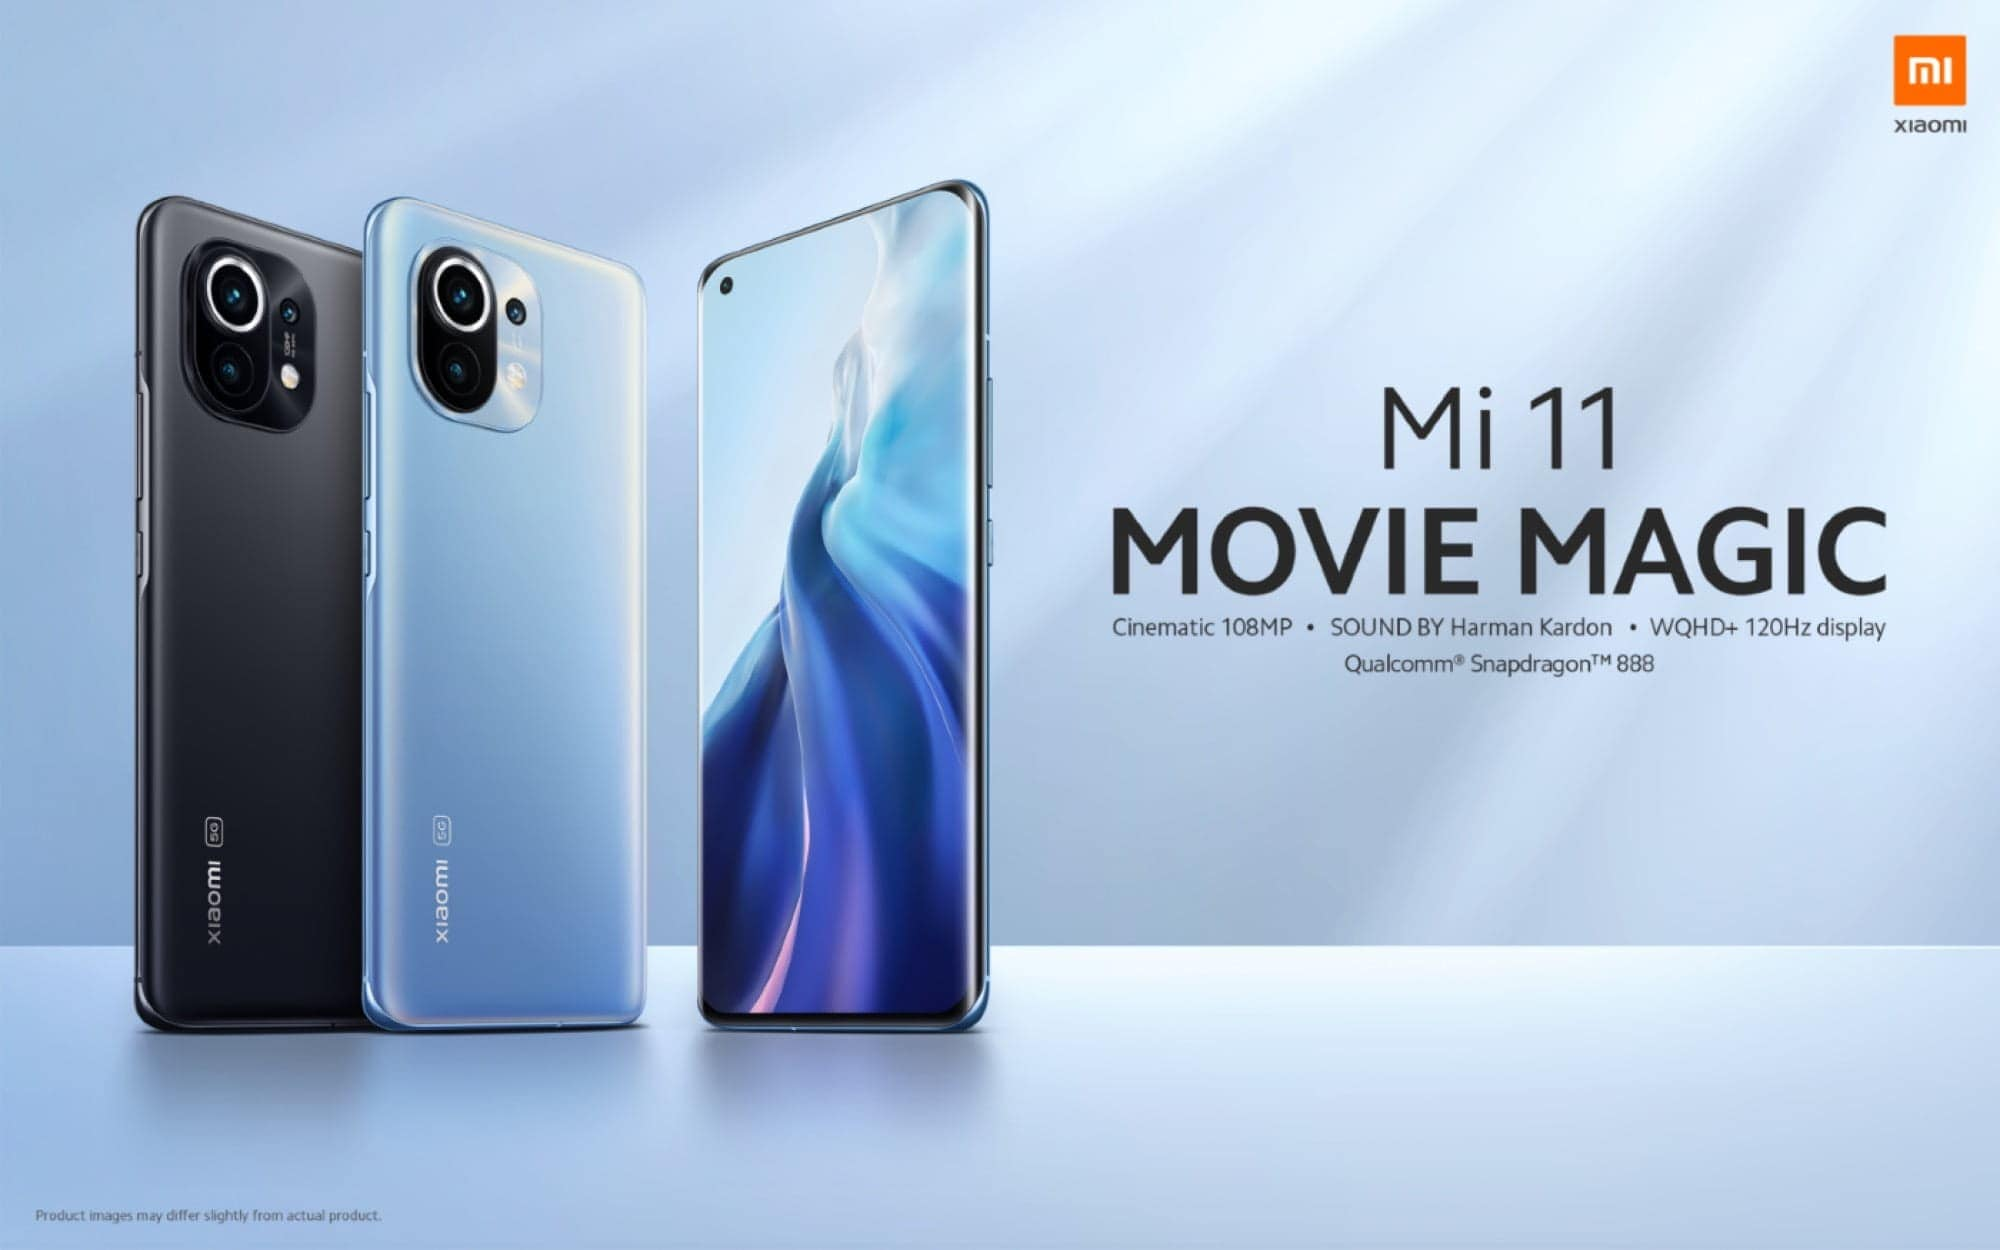 Mi 11 - เปิดตัว Mi 11 พร้อมด้วย Mi TV Q1 และ Mi Electric Scooter Pro 2 Mercedes-AMG Petronas F1 Team Edition